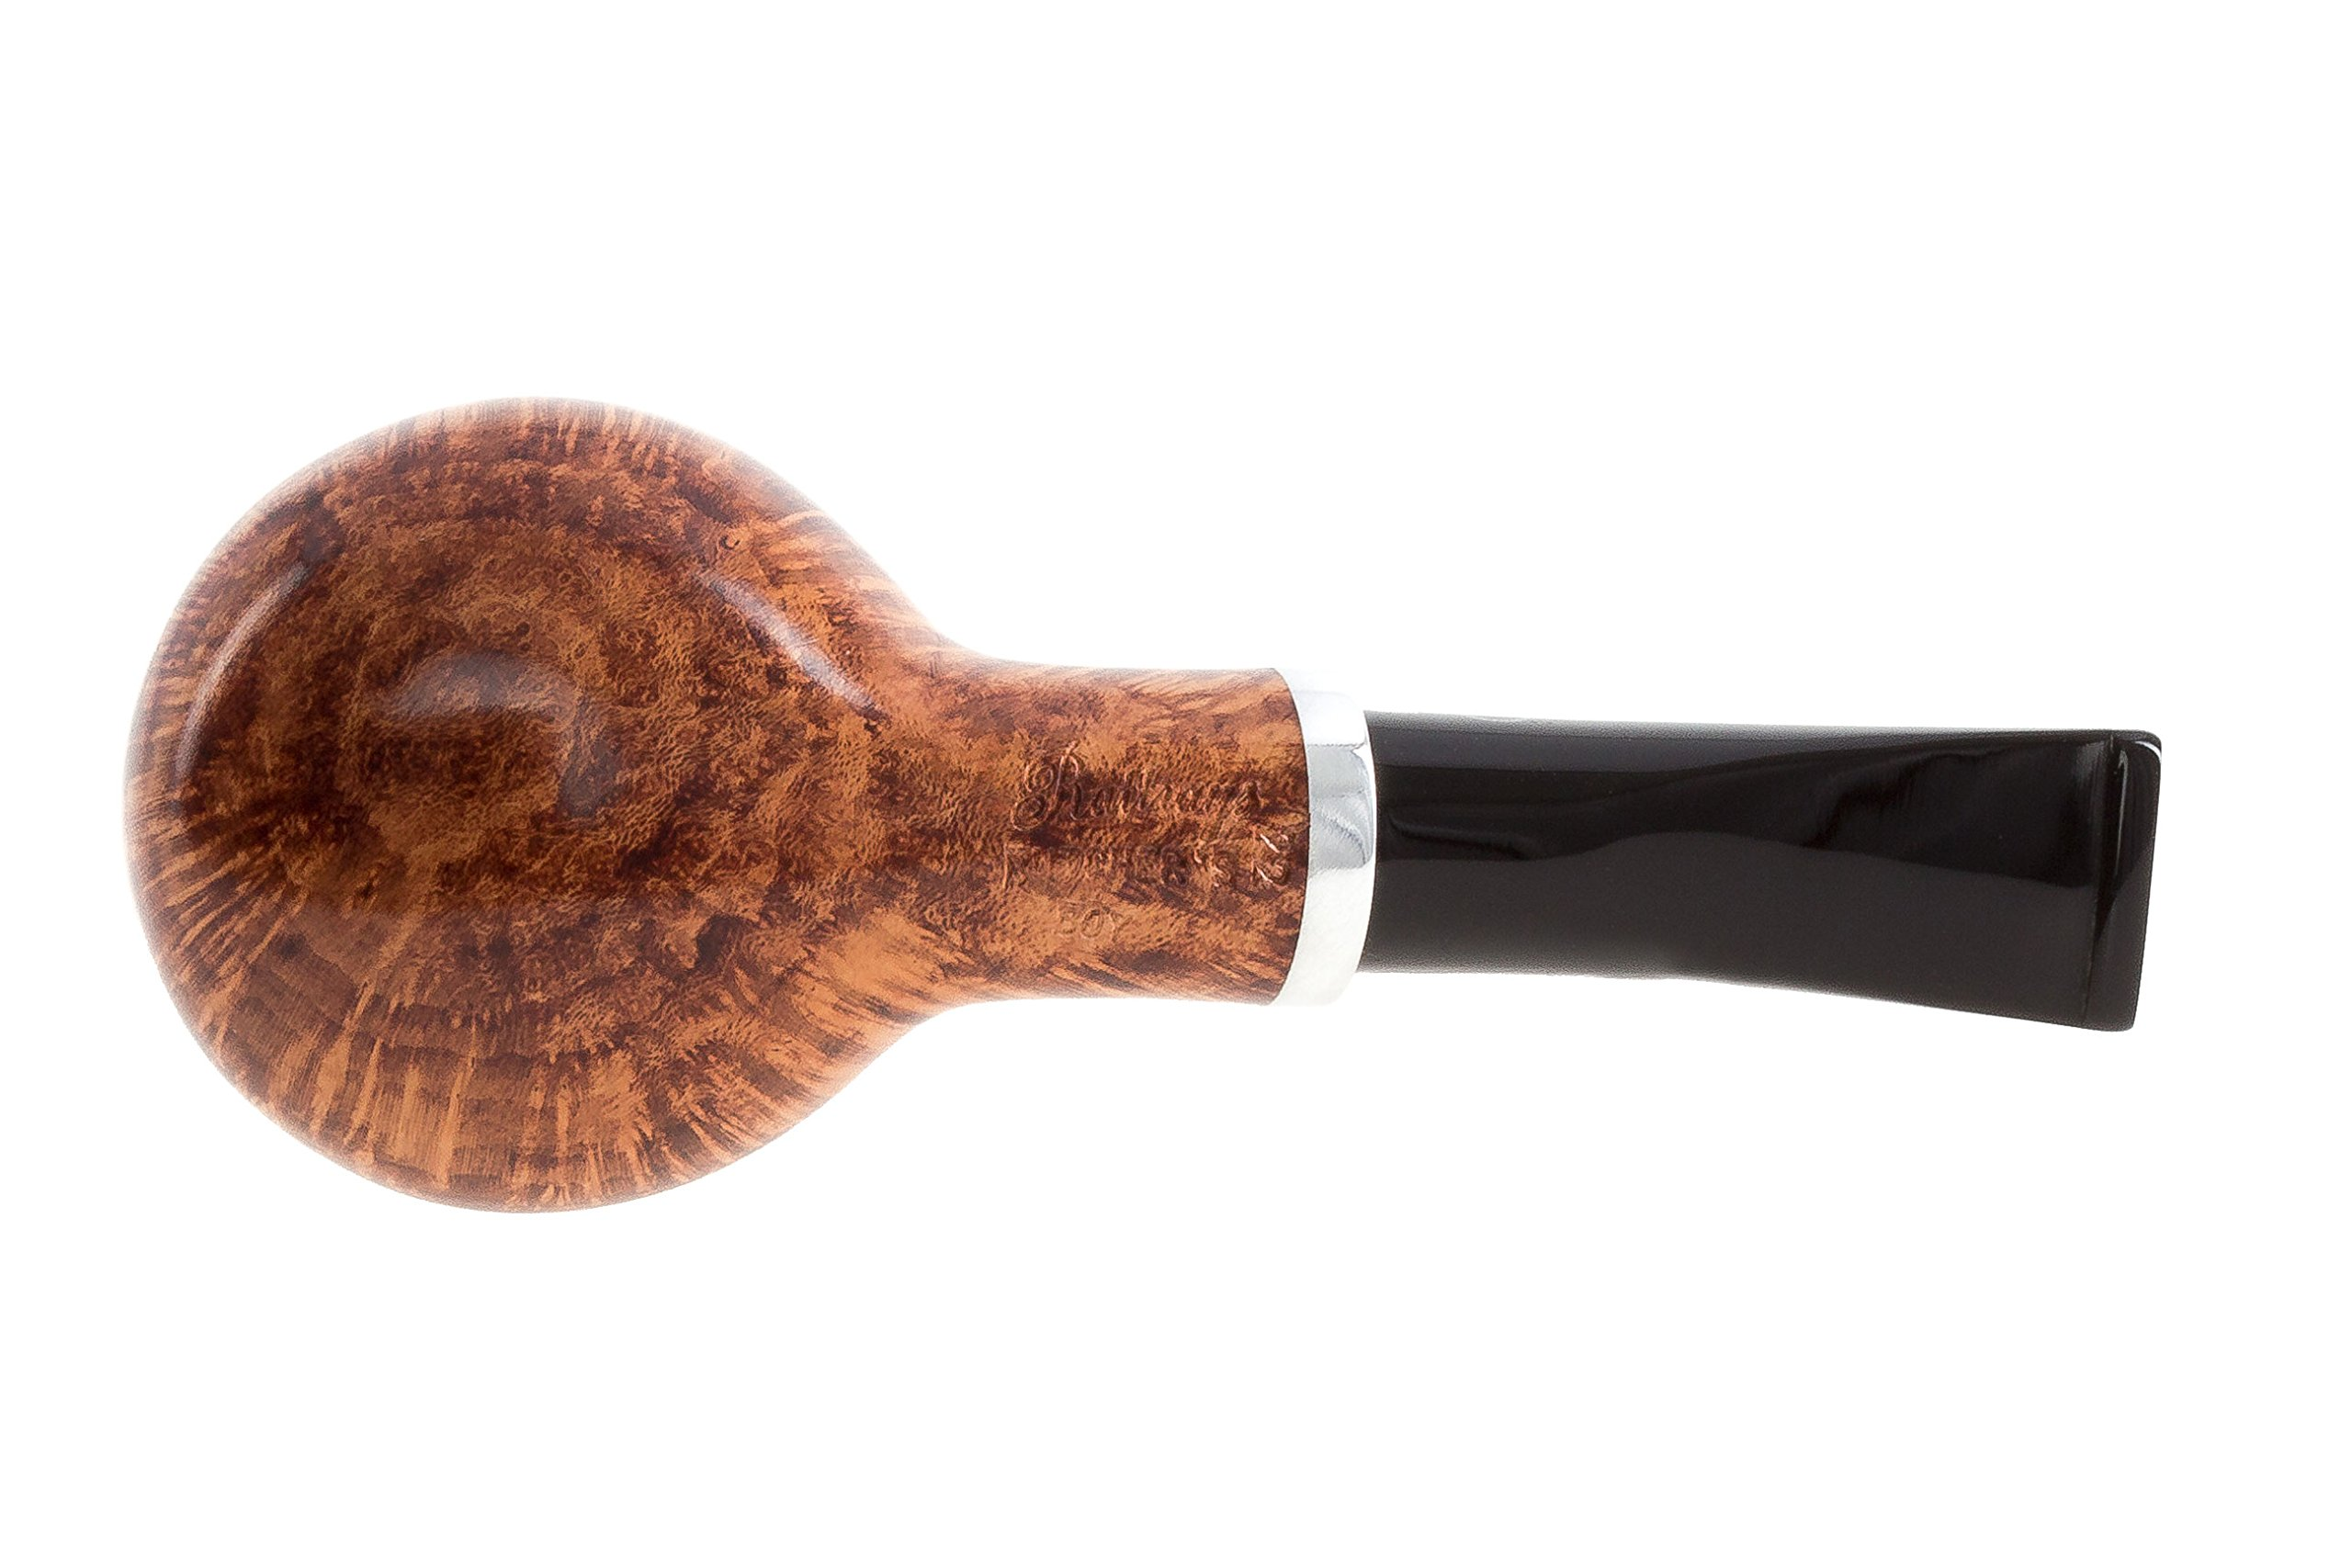 Rattray's Butcher's Boy 22 Tobacco Pipe - Natural by Rattray's (Image #4)